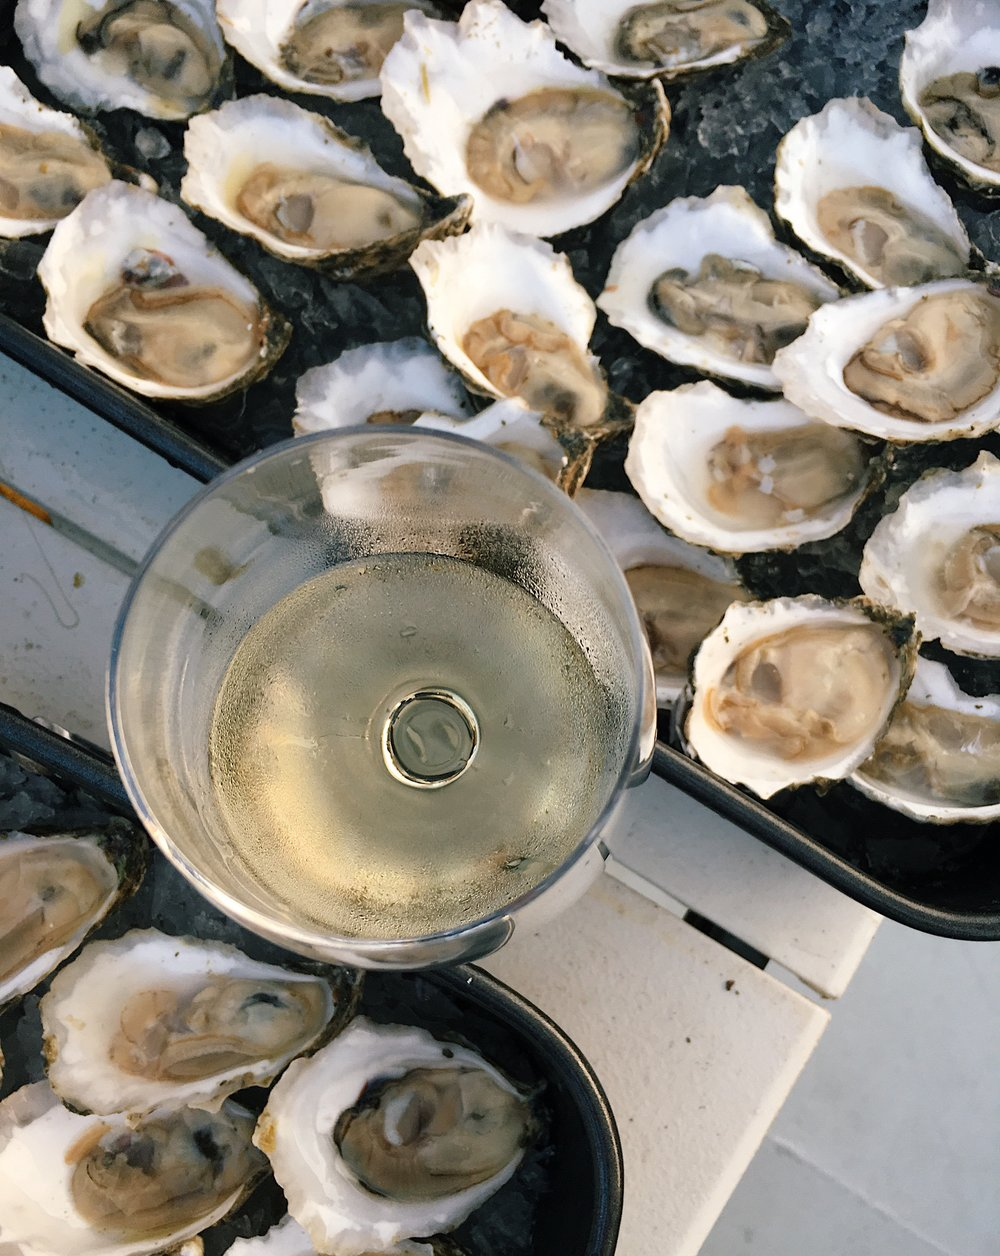 Wine_Wise_Sail_Oysters_portland_maine_2.jpg